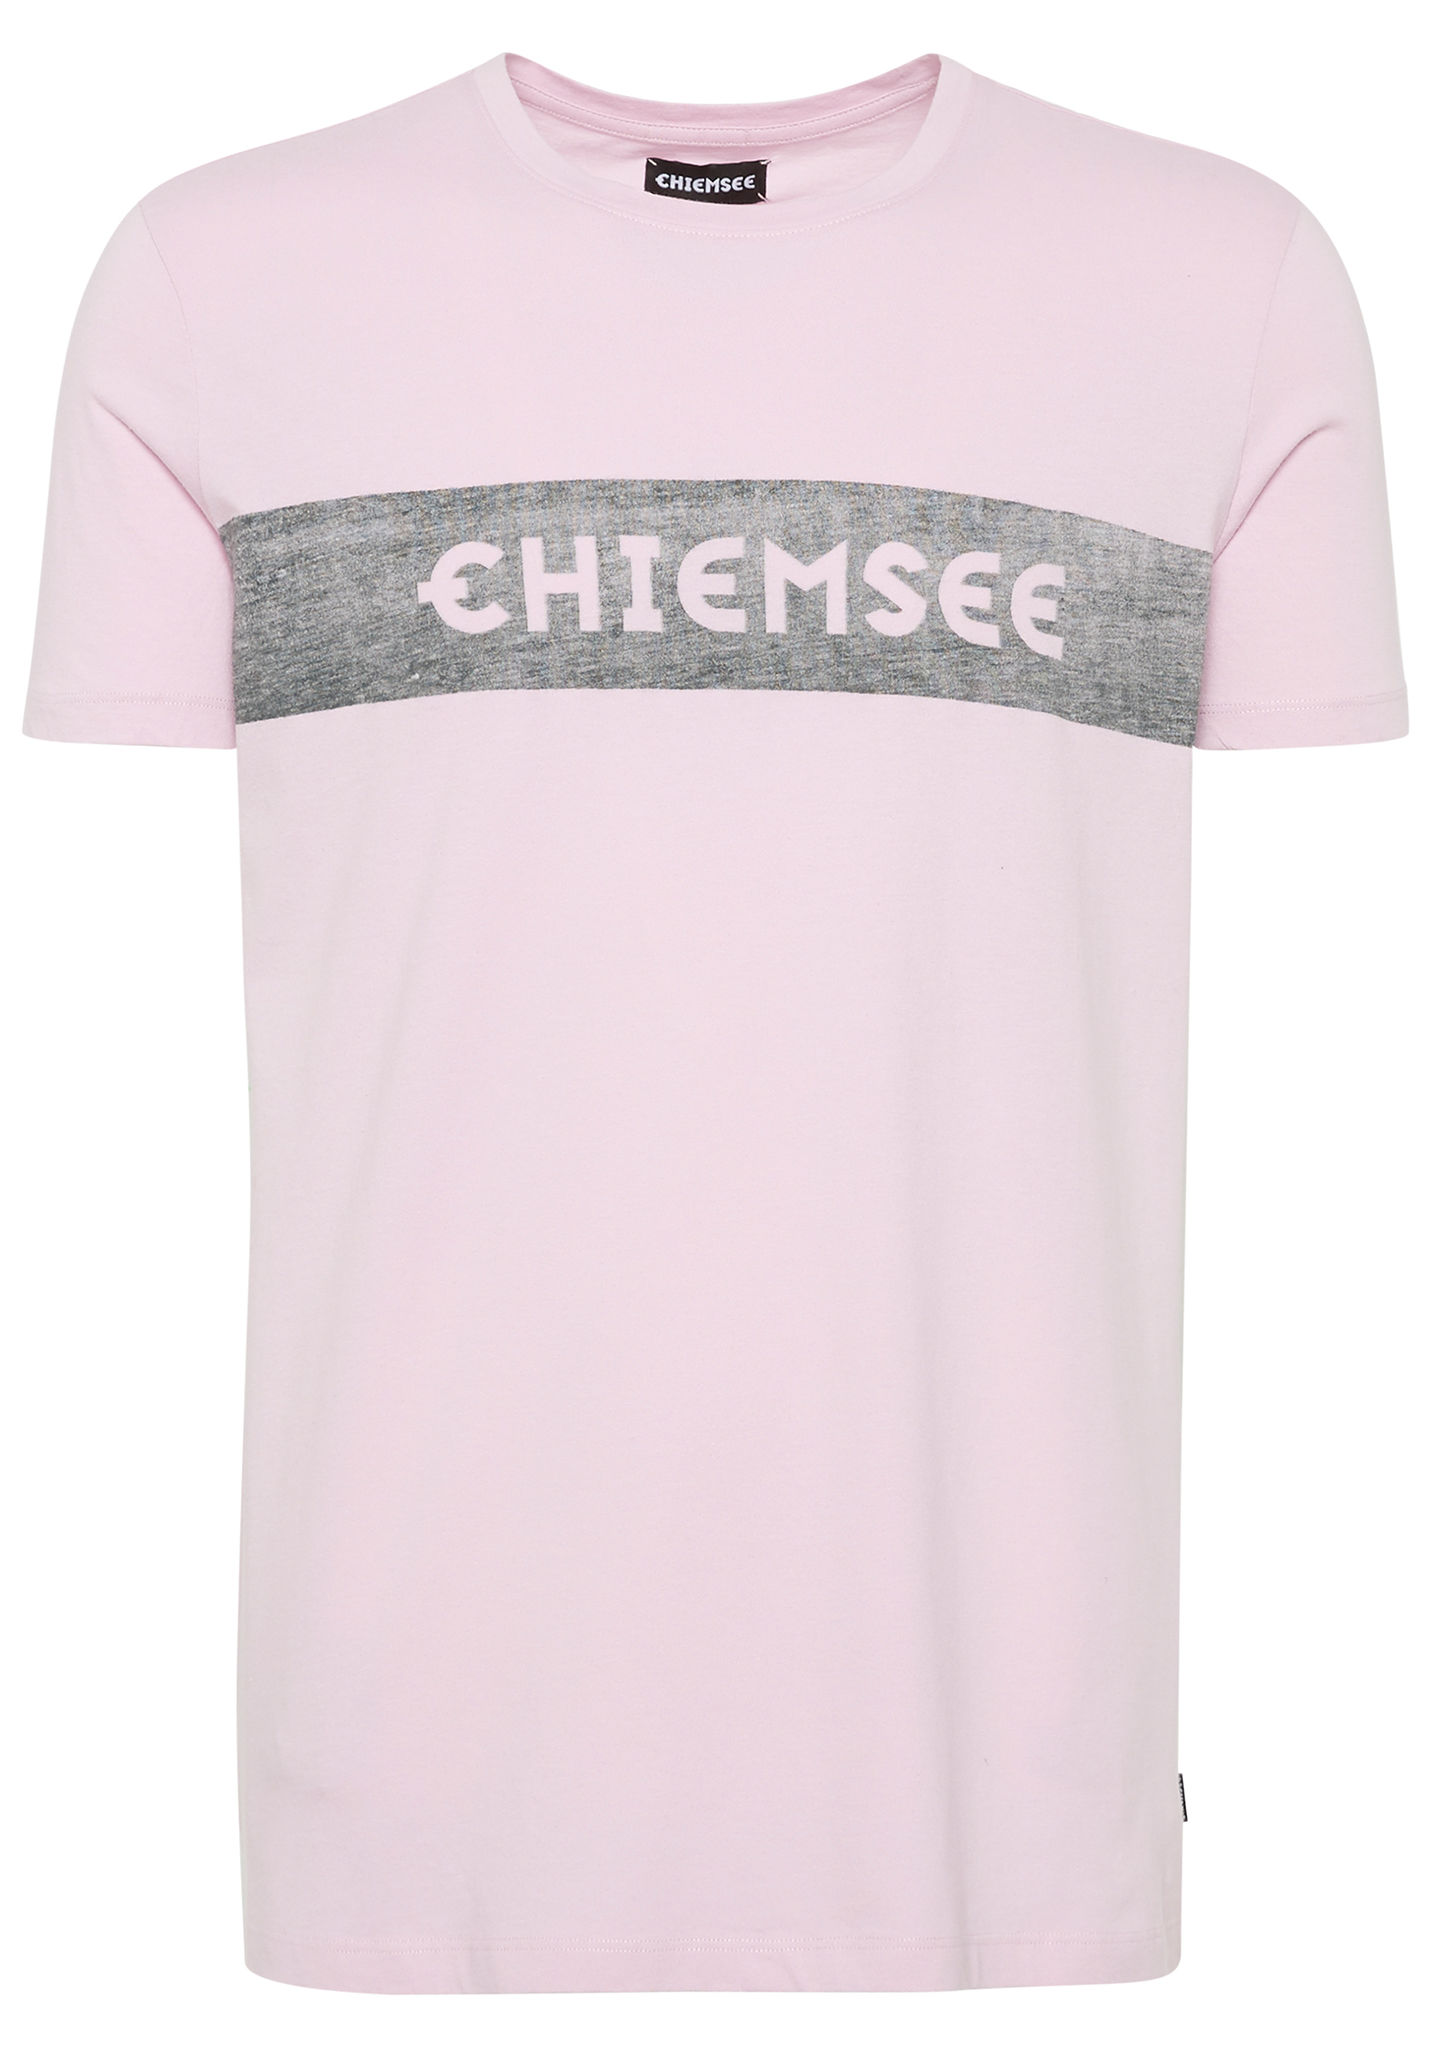 f9b046694f2434 Chiemsee T-Shirt - T-Shirt für Herren - Pink - Planet Sports